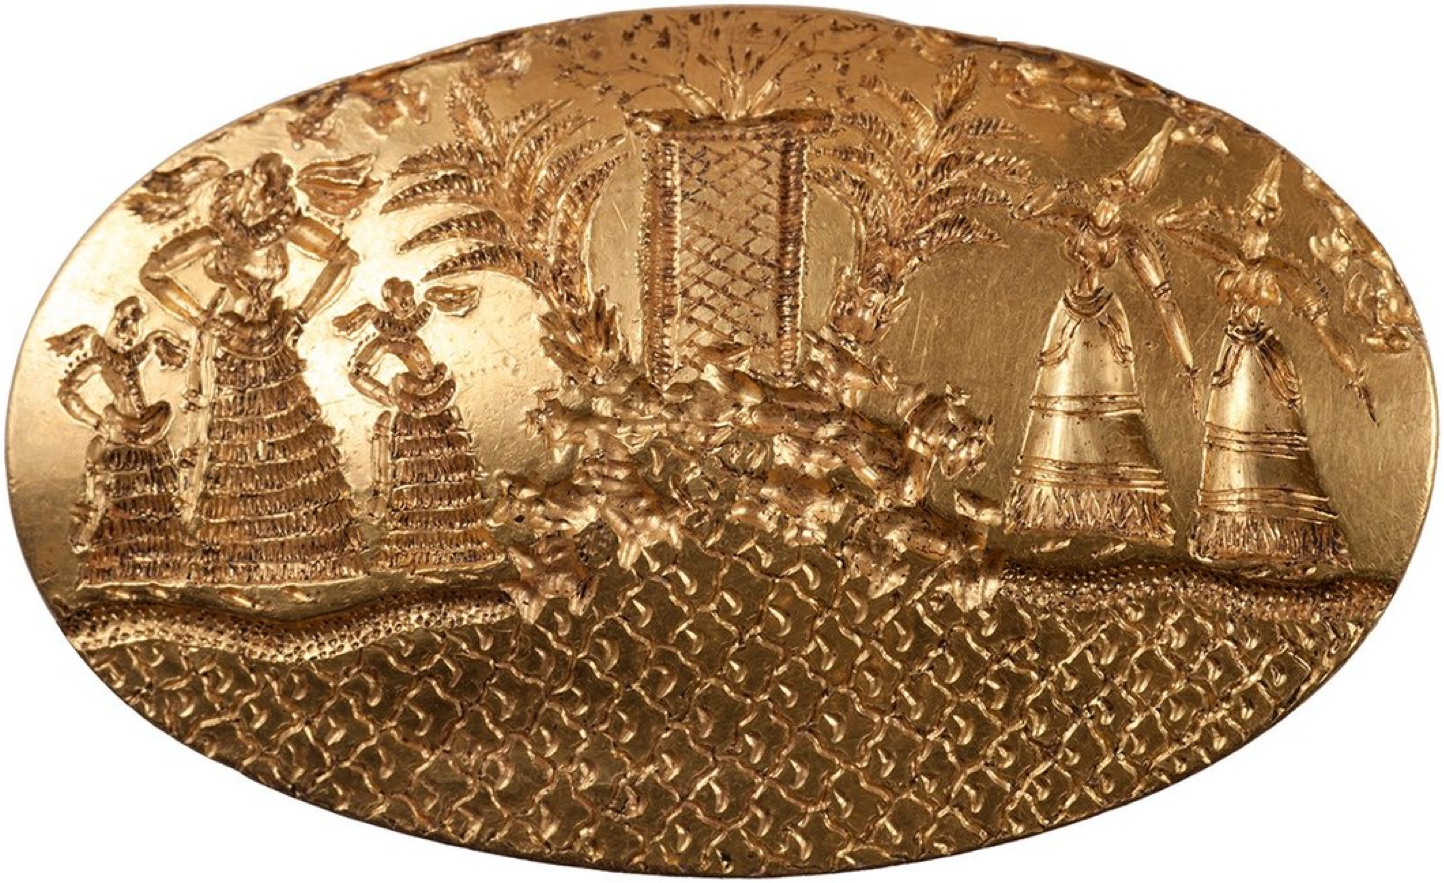 This gold signet ring, one of four recently discovered in Greece, near Nestor's Pylos, in a miraculously undisturbed tomb as a part of a burial of a wealthy Bronze Age Warrior, returns us to the world of the Minoans.   Minoan Crete, situated just across the sea from Egypt, traded with this most venerable Ancient Nile Civilization for the many centuries of the existence of the Minoan Sea Empire, from its infancy through to its fiery end.  While a culture long traveling its own distinct trajectory, the Minoans, and their immediate heirs, the Mycenaeans, could not but help to be drawn into the Egyptian cultural orbit, especially since the Egyptians had long attained their classic form while Crete was still emerging out of its Neolithic beginnings.   Thus, the challenging task of unraveling the mystery of the Minoans, given the lack of a surviving literature, necessarily includes a looking south to Ancient Egypt.   On this gold signet ring we see five elaborately dressed female figures, the three on the left apparently dancing, while the two on the right raise their right hands in a gesture of worship.  Both groups stand on the seashore, facing a mountainous landscape atop of which stands a shrine framed by Palm Trees, out of which grows some sort of bush.  Each element of this striking scene finds many parallels in surviving Minoan iconography.   The two emphatically present Palm Trees are striking in their computational preeminence, and in their naturalism.